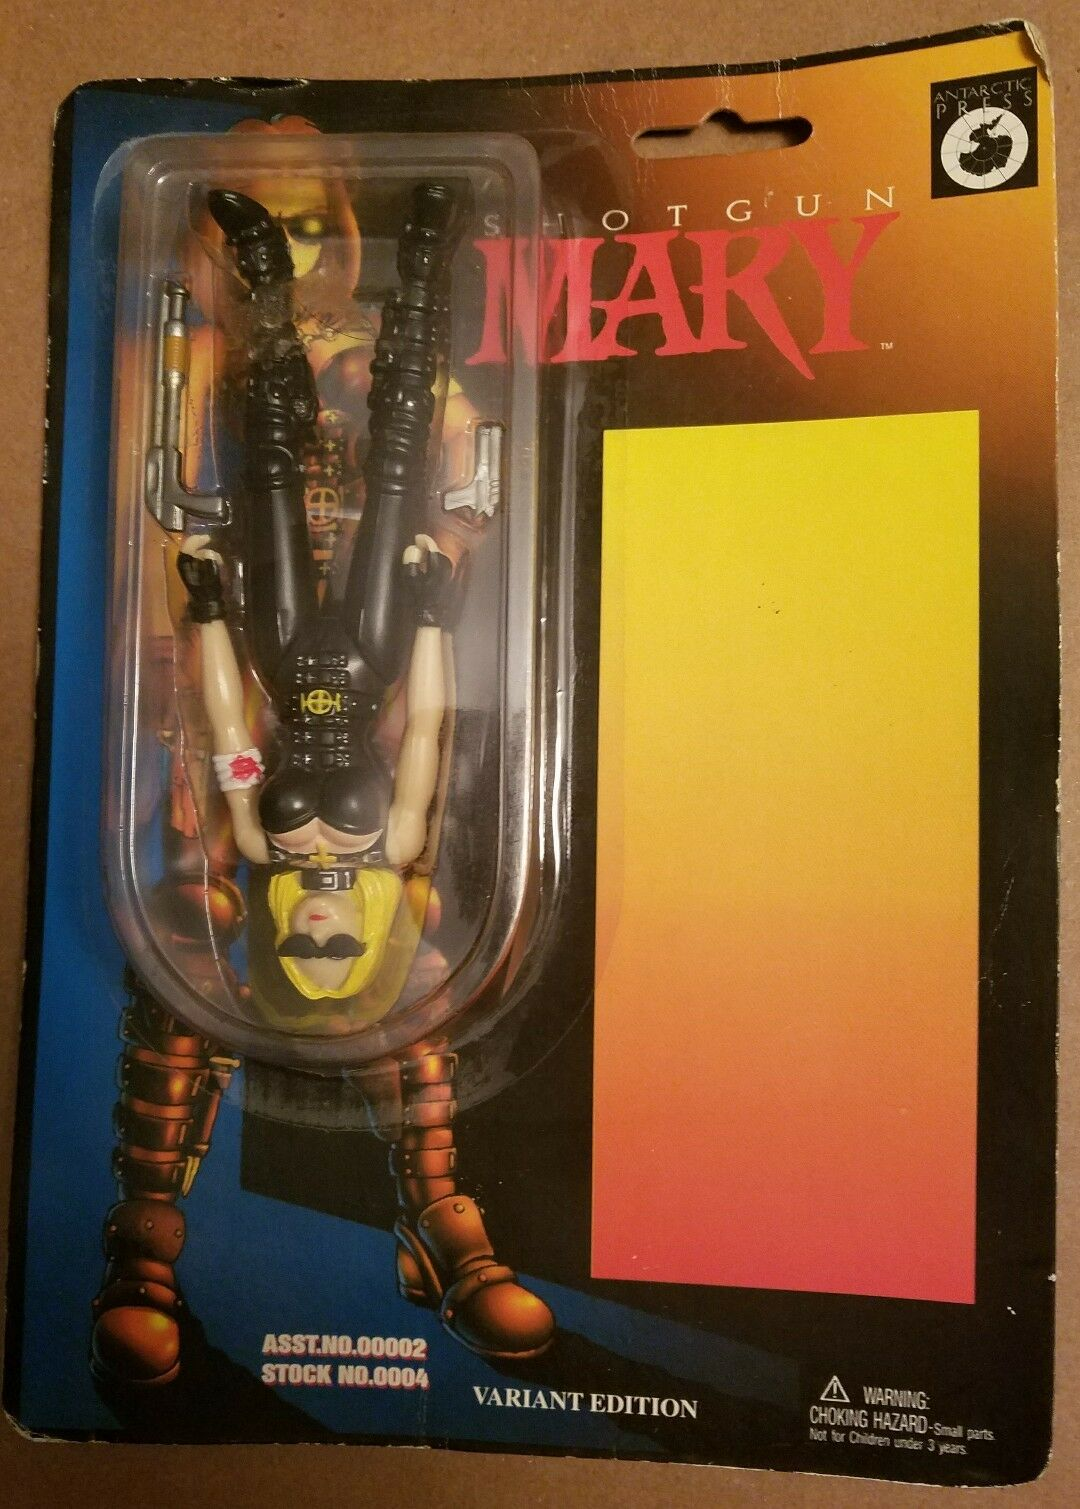 1997 Shotgun Mary Variant Edition Action Figure Upside Down & on Wrong Side RARE